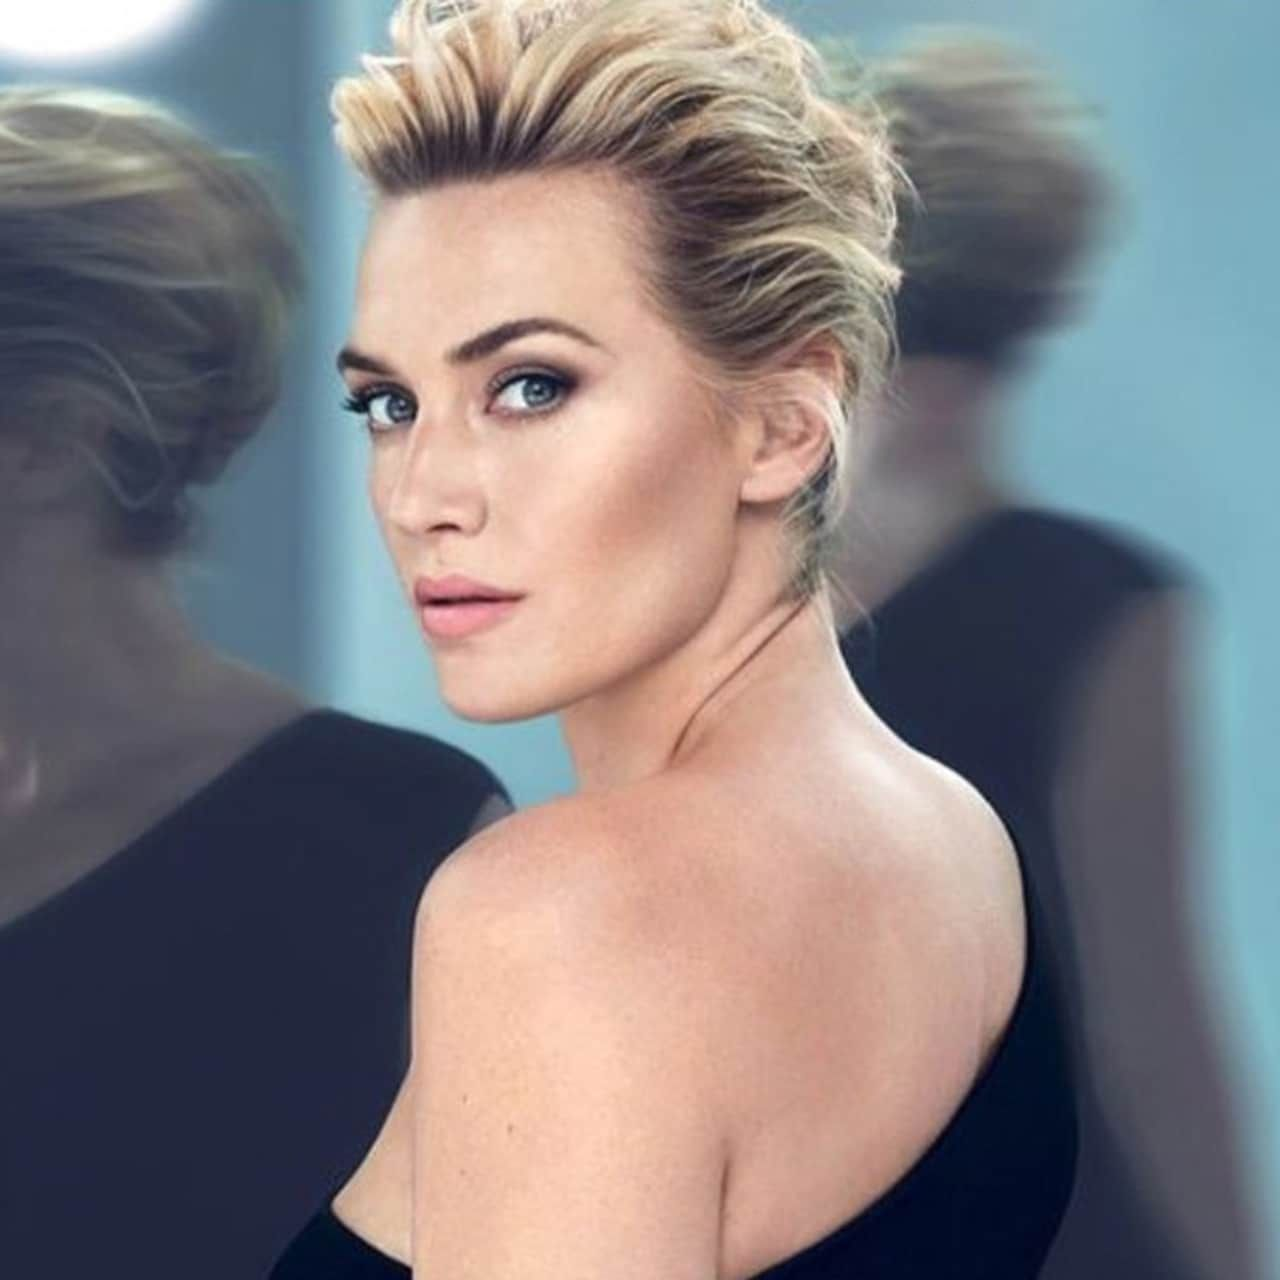 Kate Winslet For Lancome Short Hair Styles Kate Winslet Modern Short Hairstyles